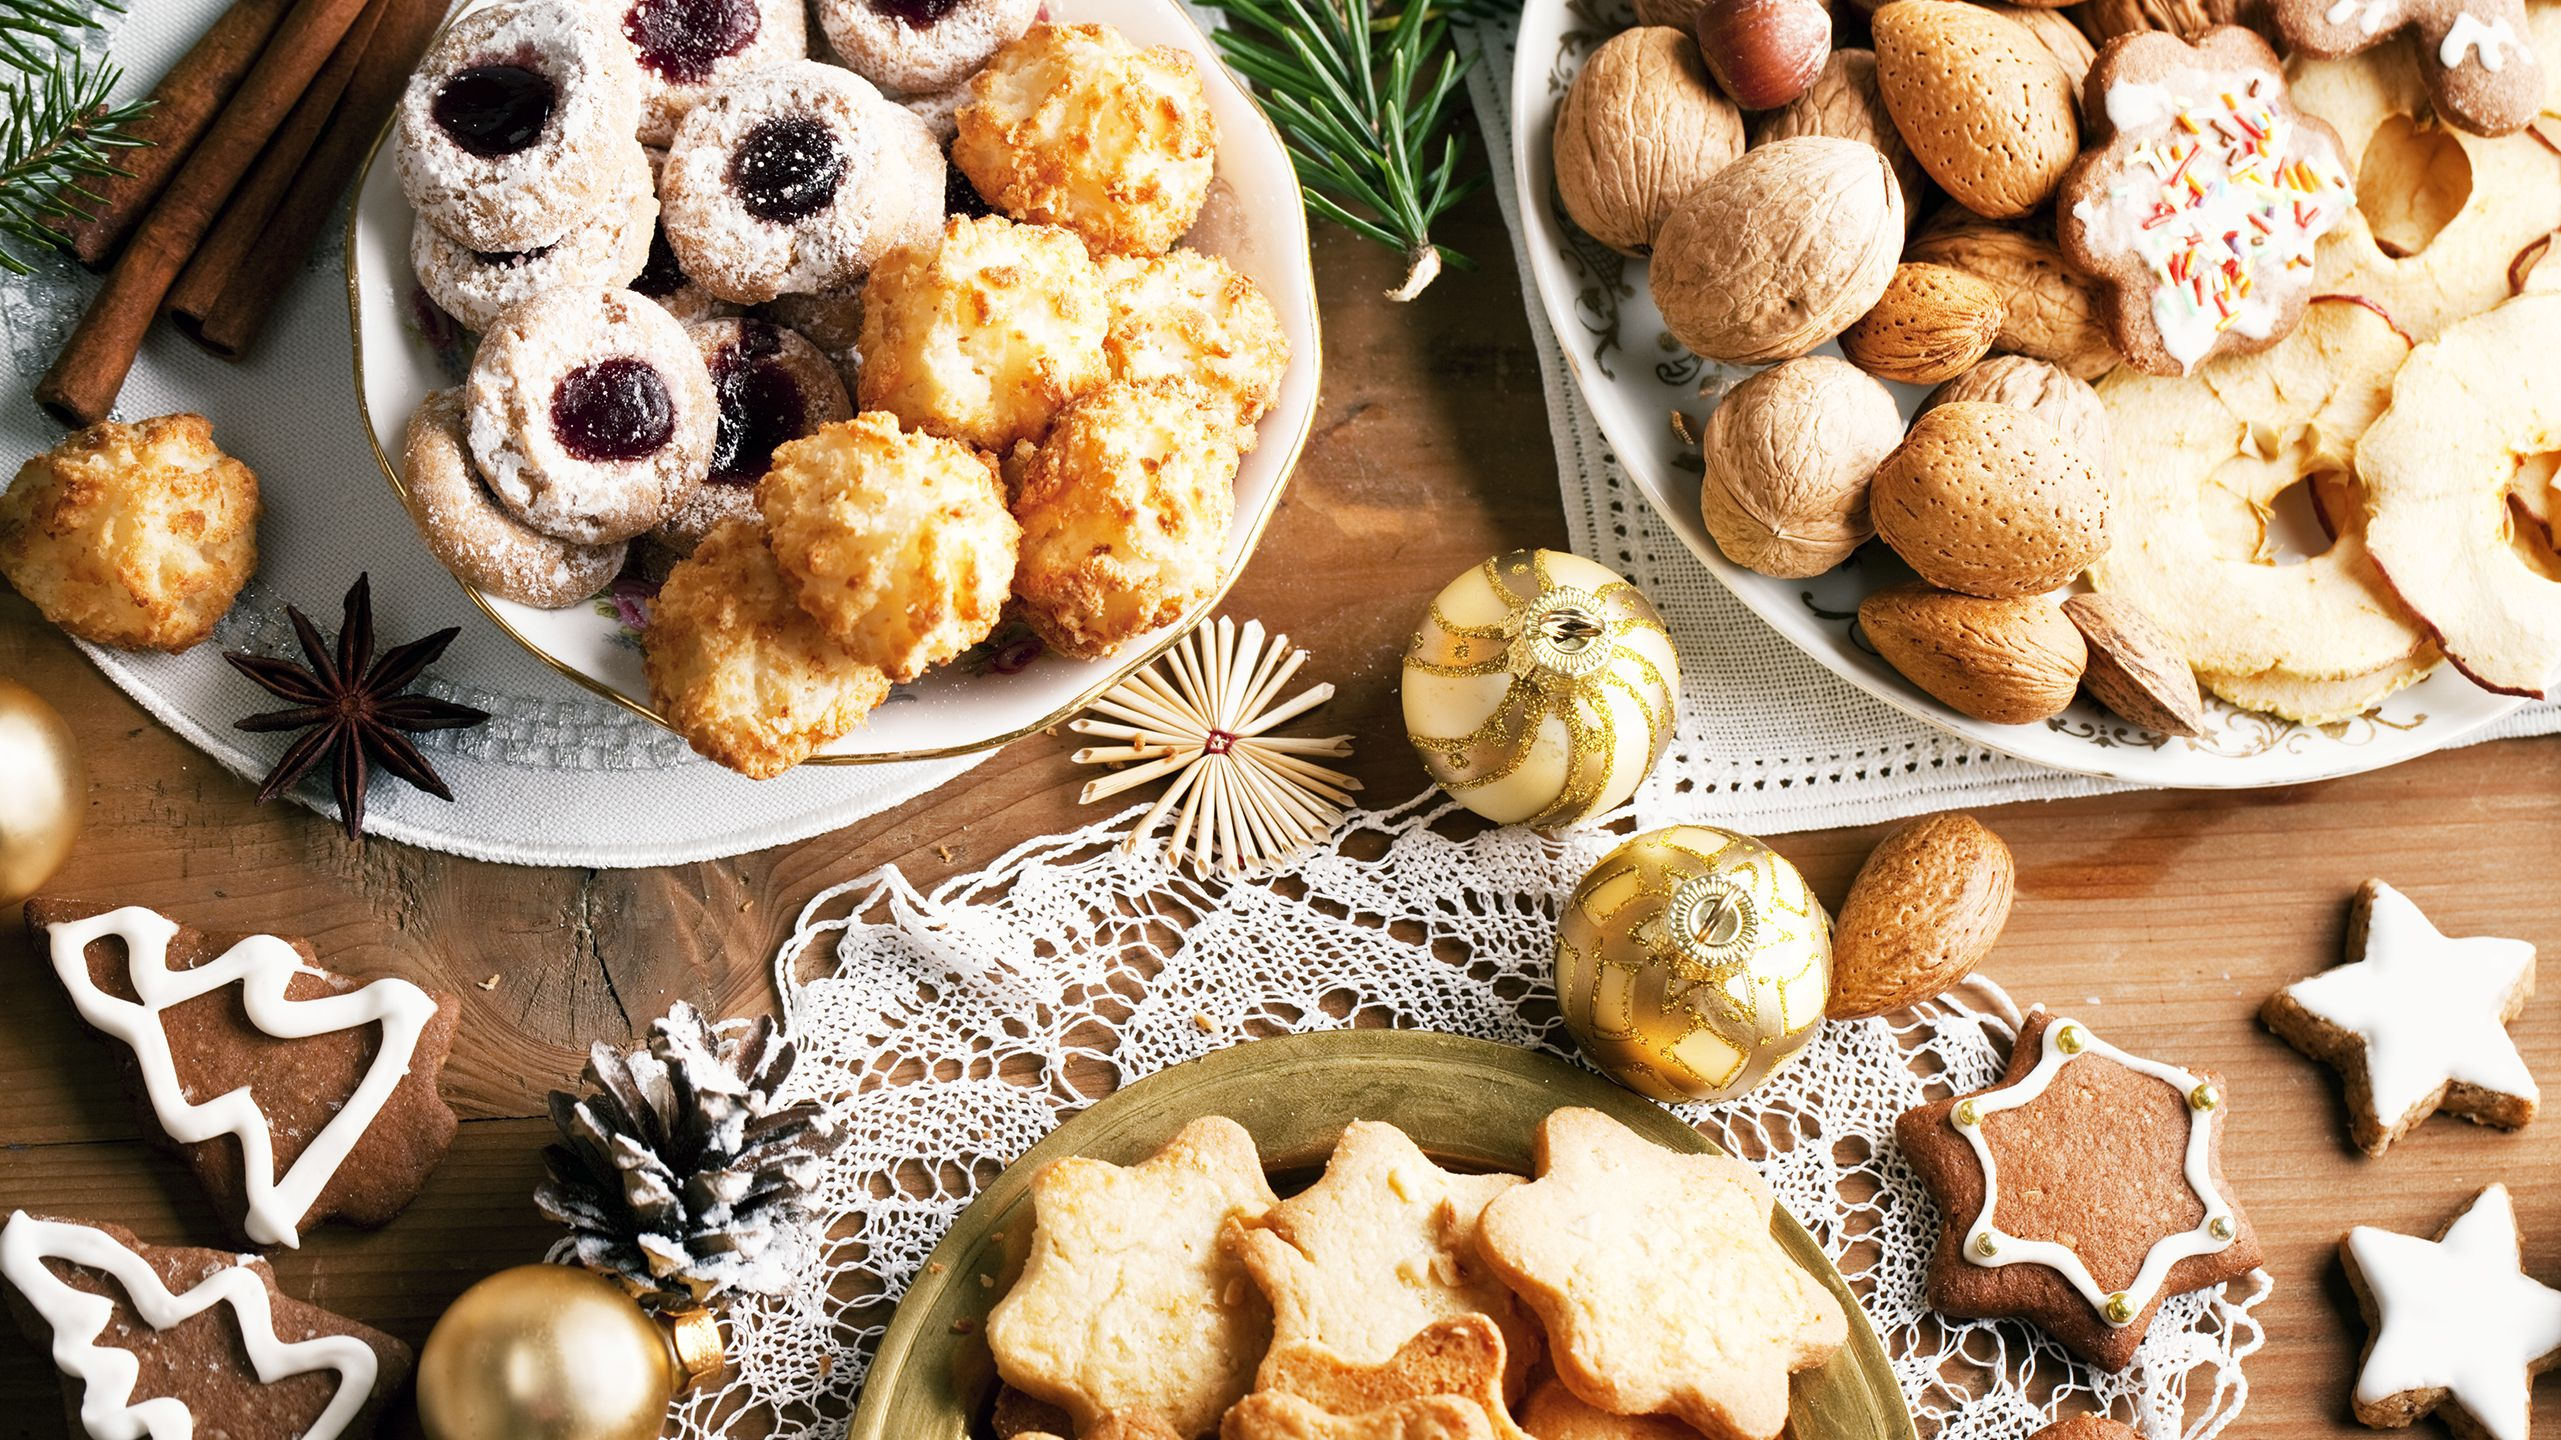 Dorie Greenspan, author of the James Beard Award-winning cookbook 'Dorie's Cookies,' shares her best holiday baking tips and a delicious recipe.It's the most wonderful time of the year: Cookie …